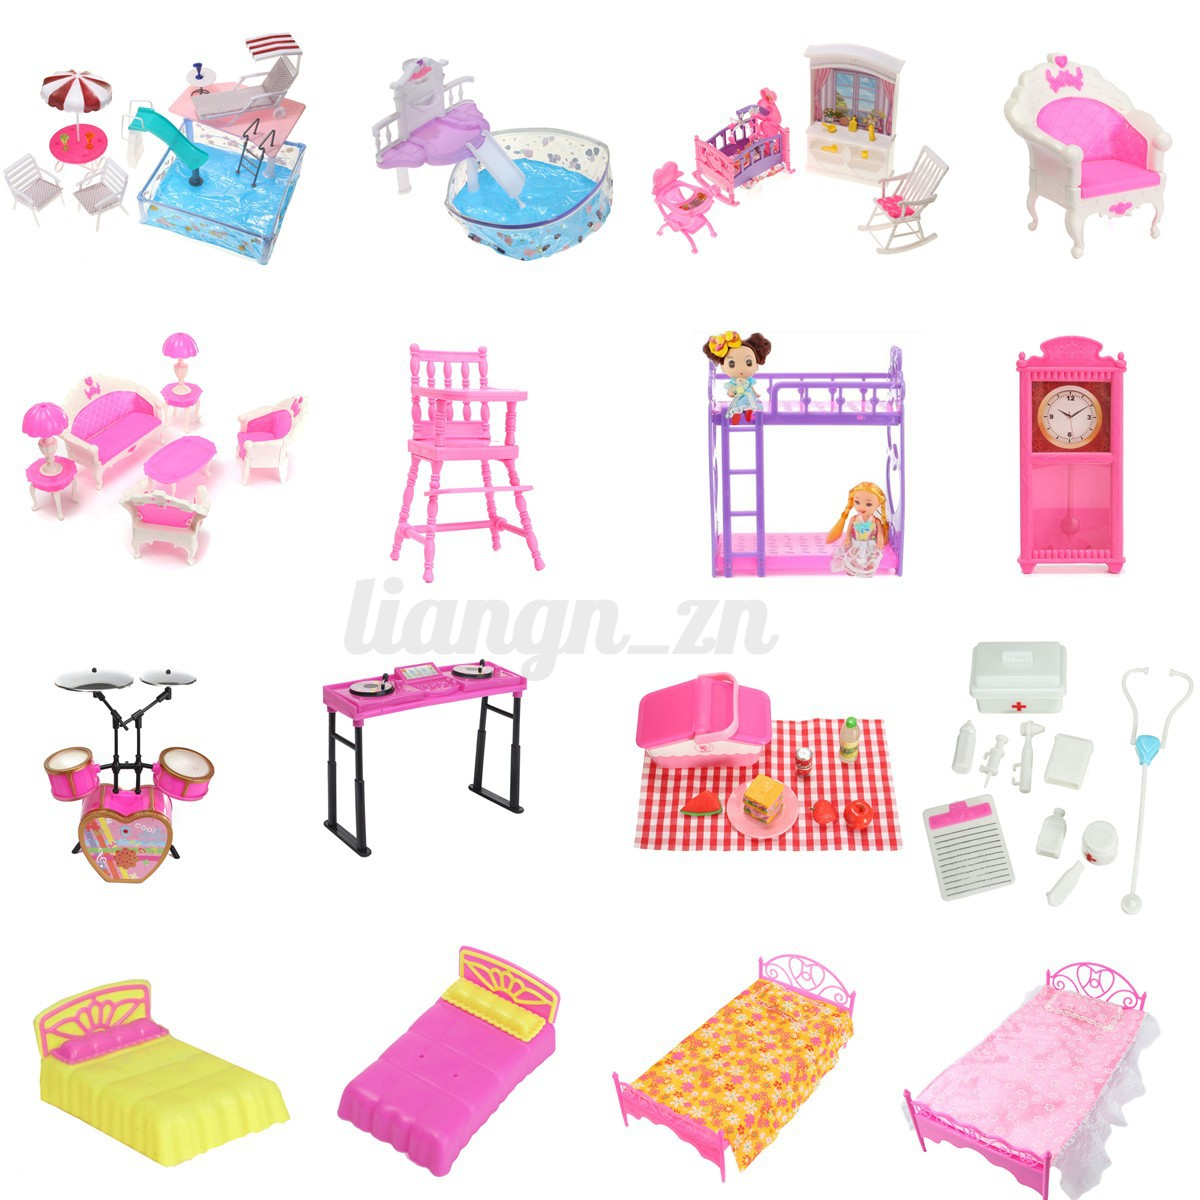 maison poup e meuble chaise chambre lit horloge barbie. Black Bedroom Furniture Sets. Home Design Ideas